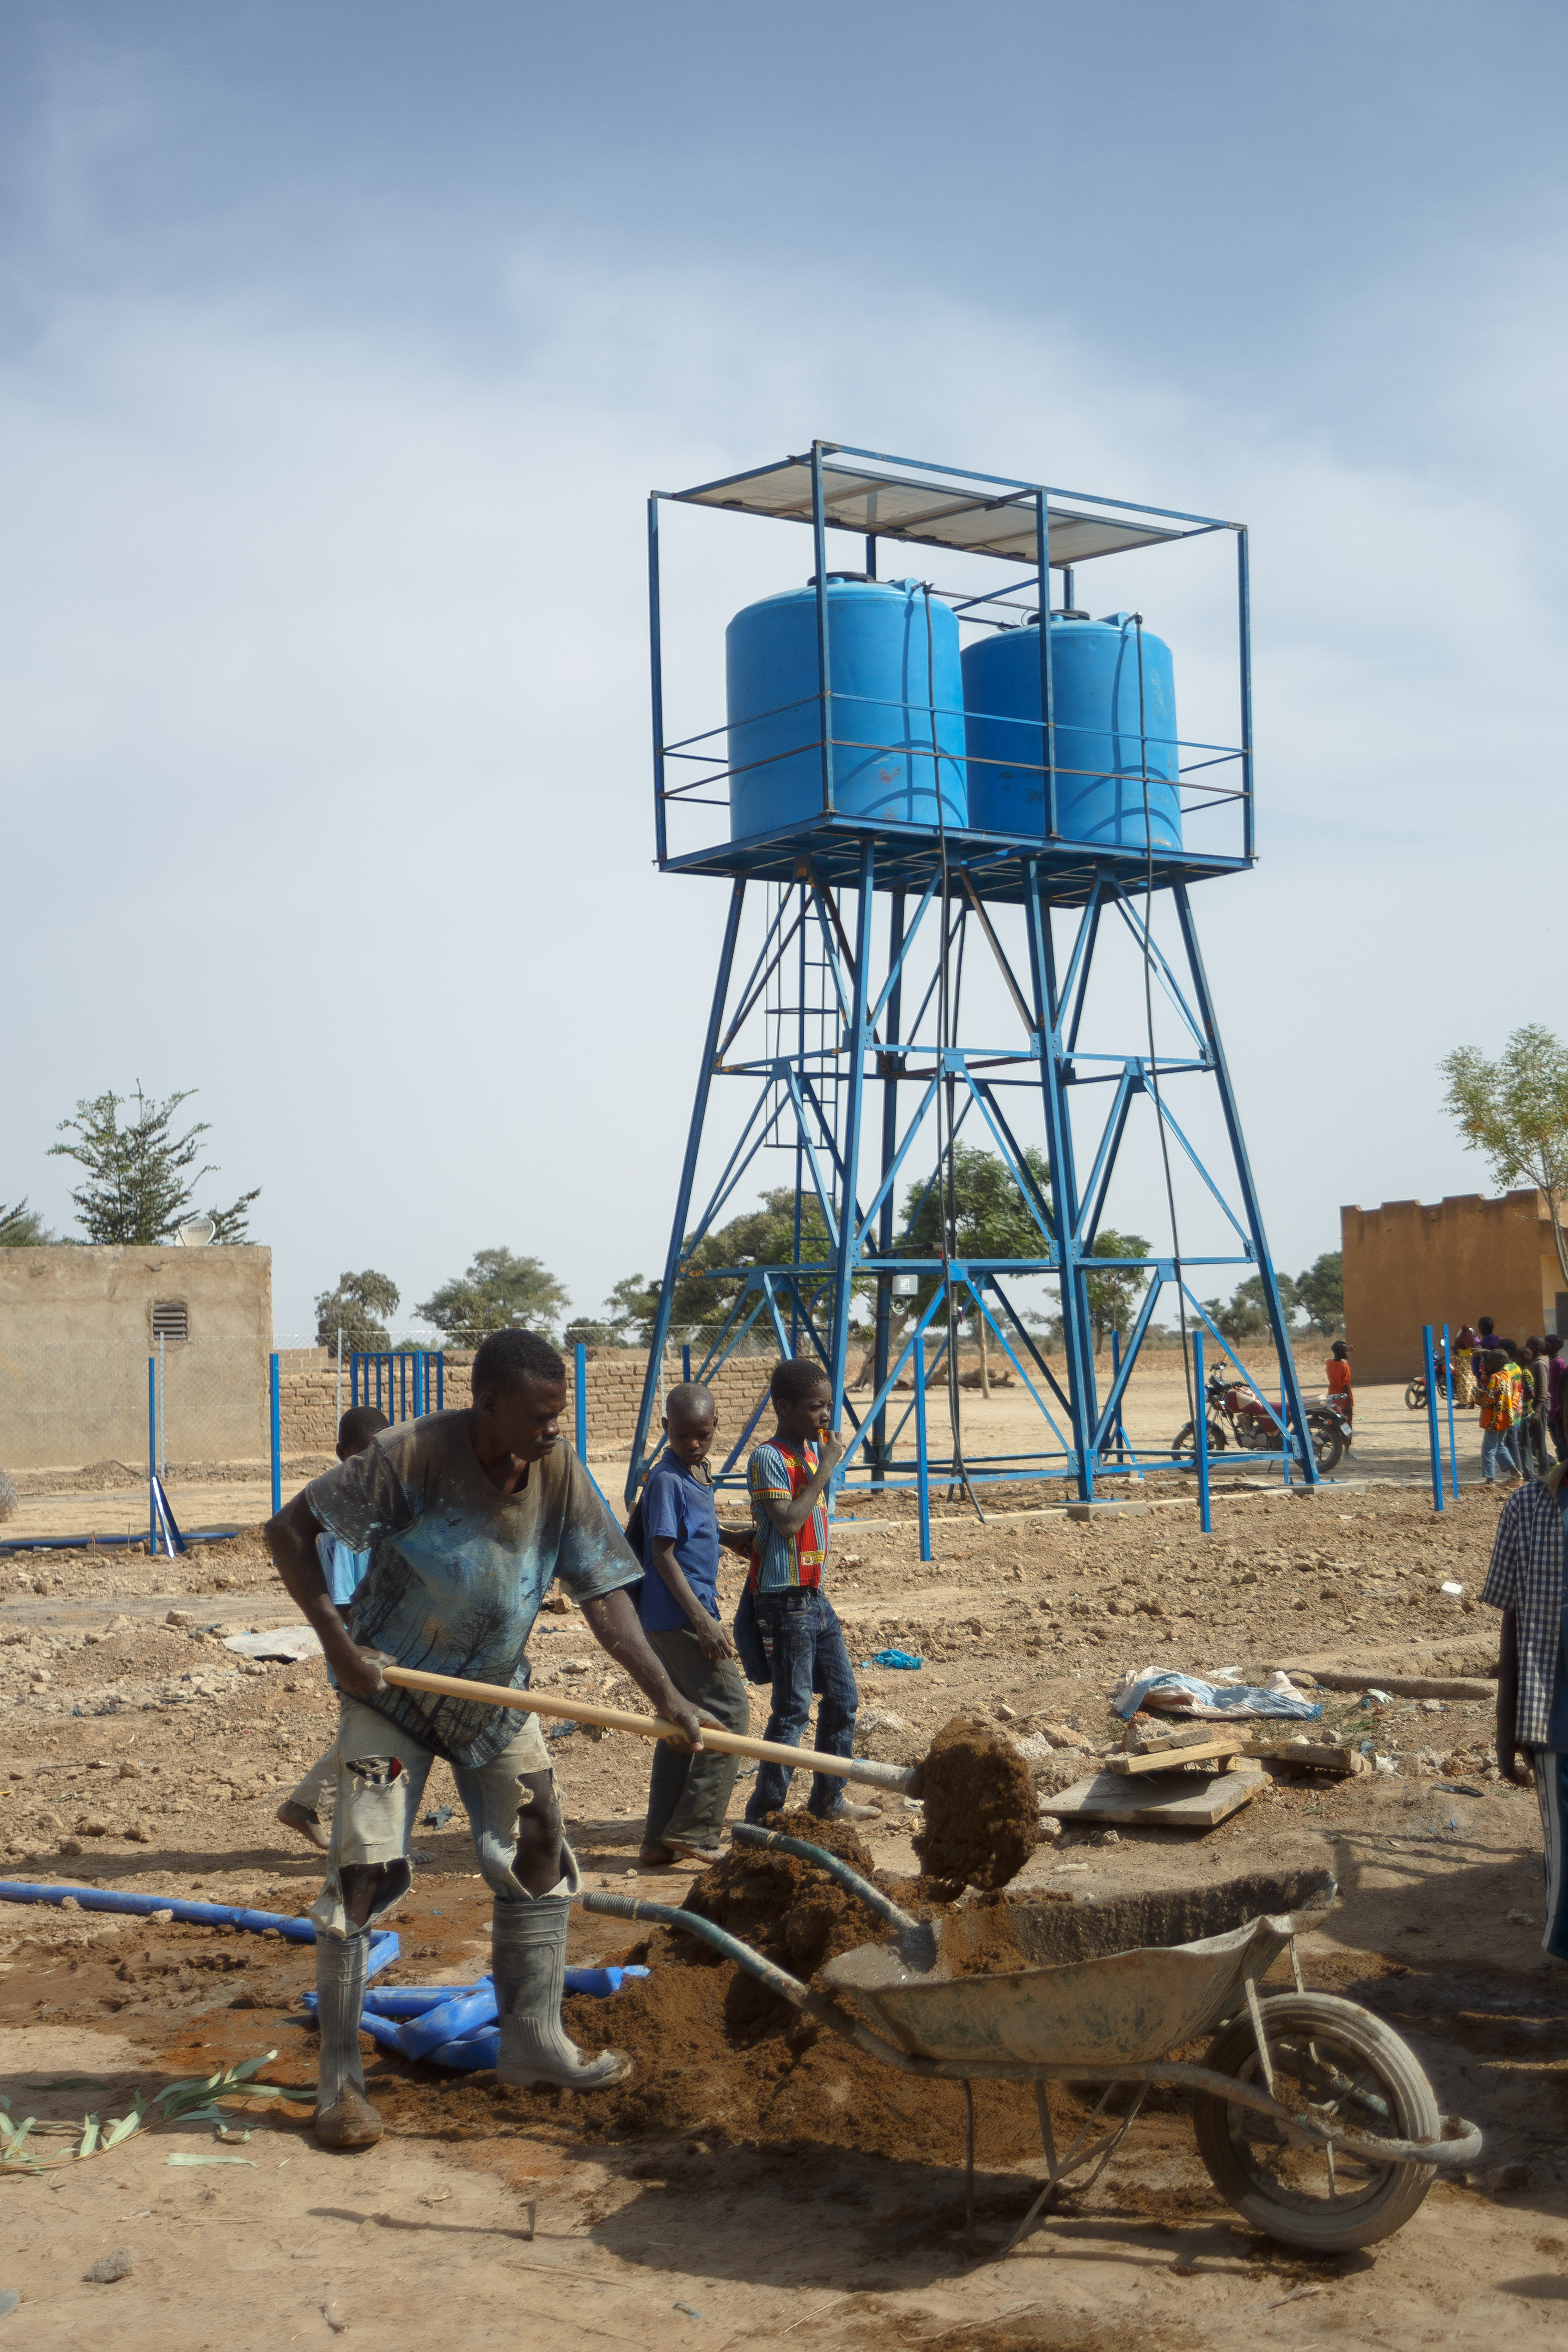 Construction of the water tower at Talo Health Centre, Mali